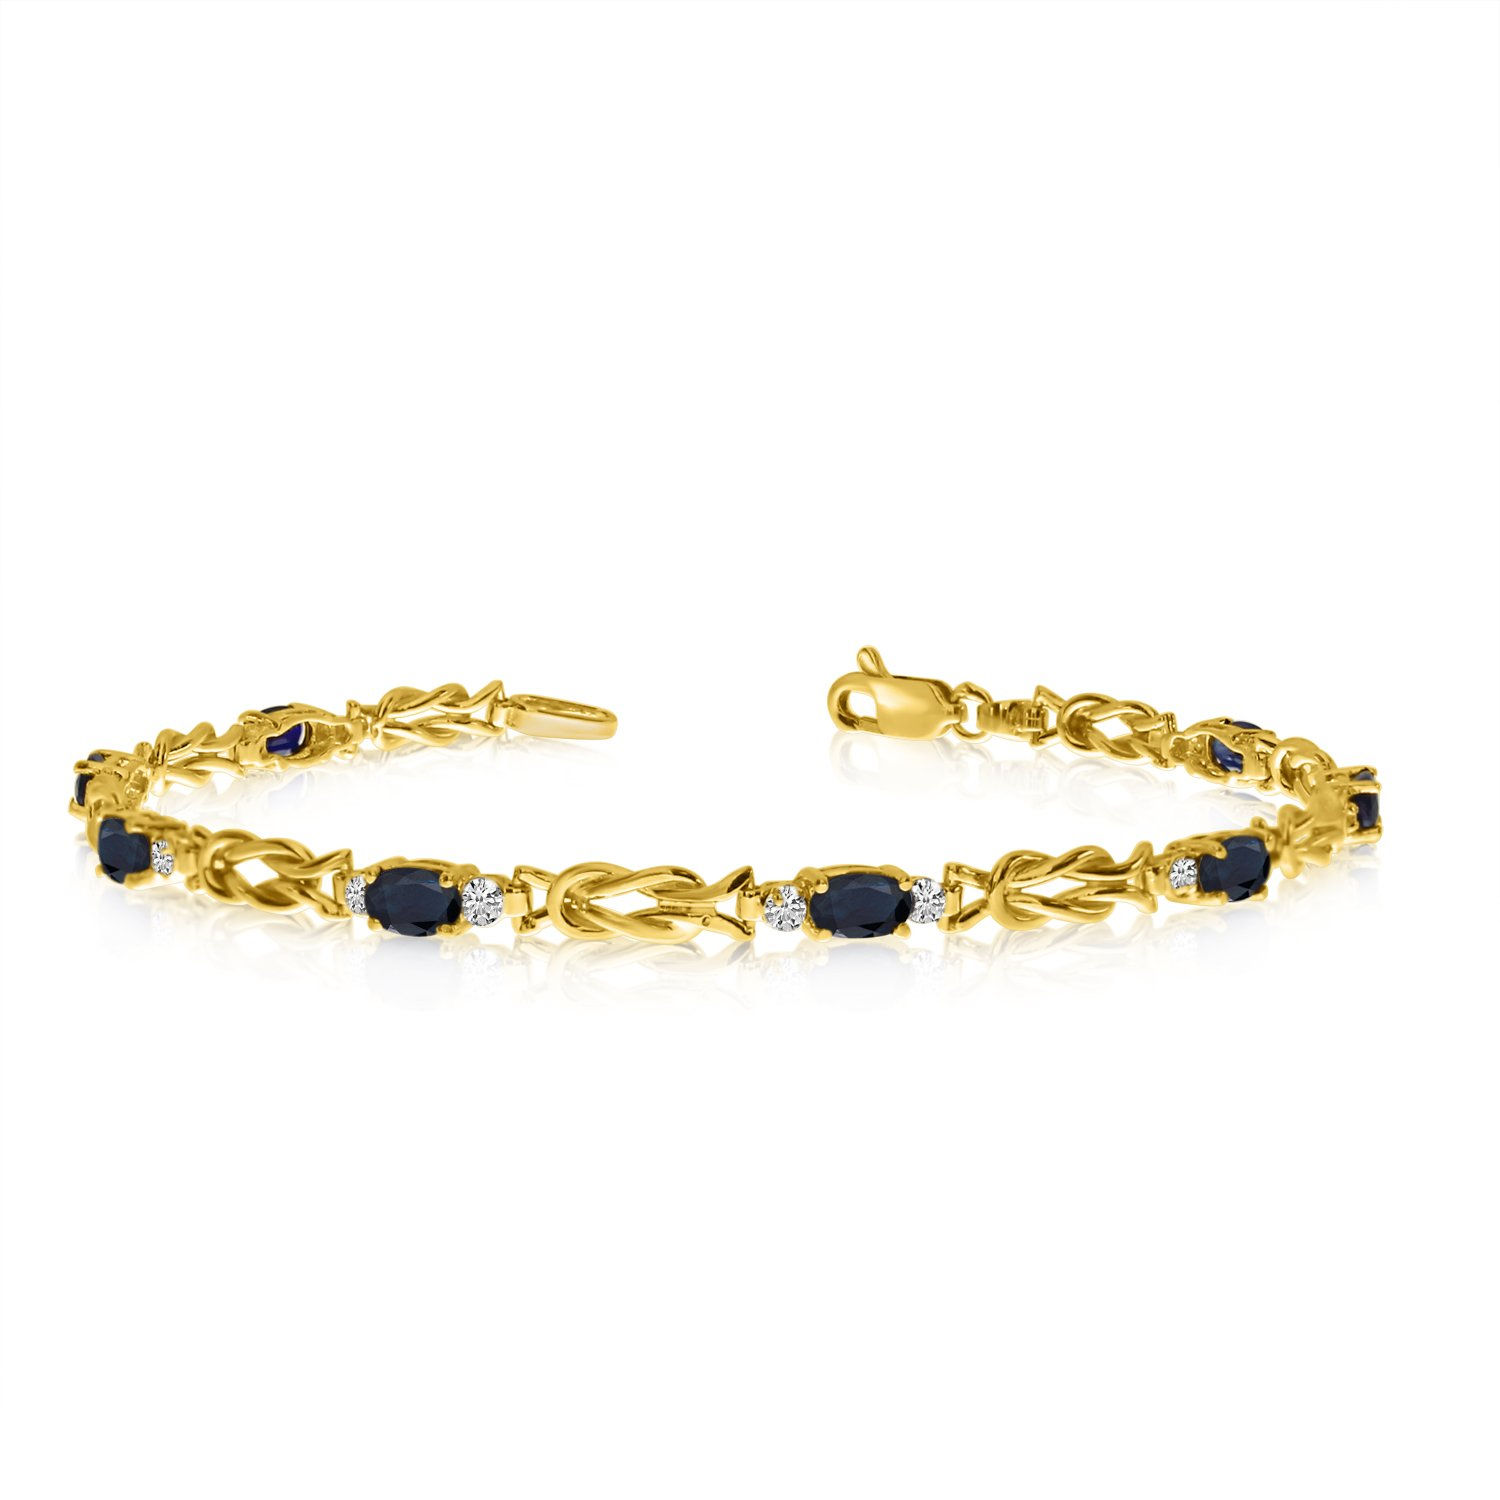 14K Yellow Gold Oval Sapphire and Diamond Bracelet (9 Inch Length) by Direct-Jewelry